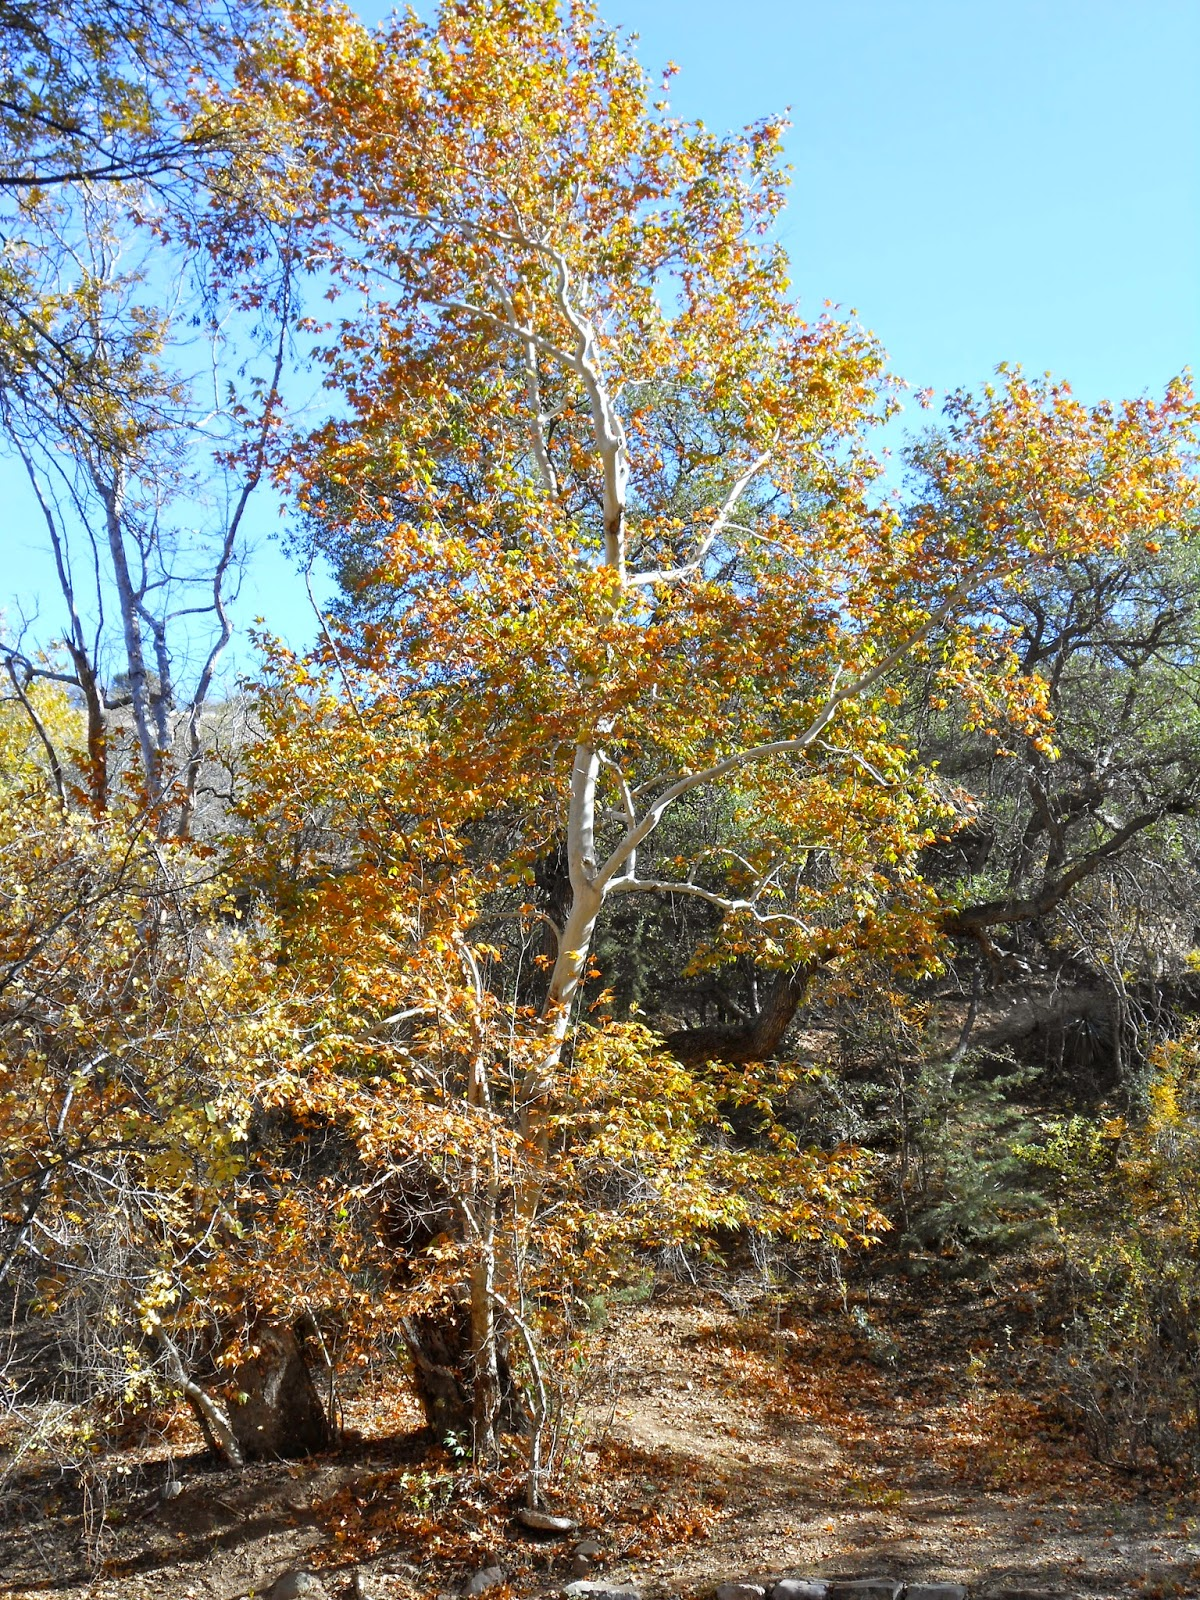 hiking near peppersauce cave oracle arizona catalina mountains in the fall